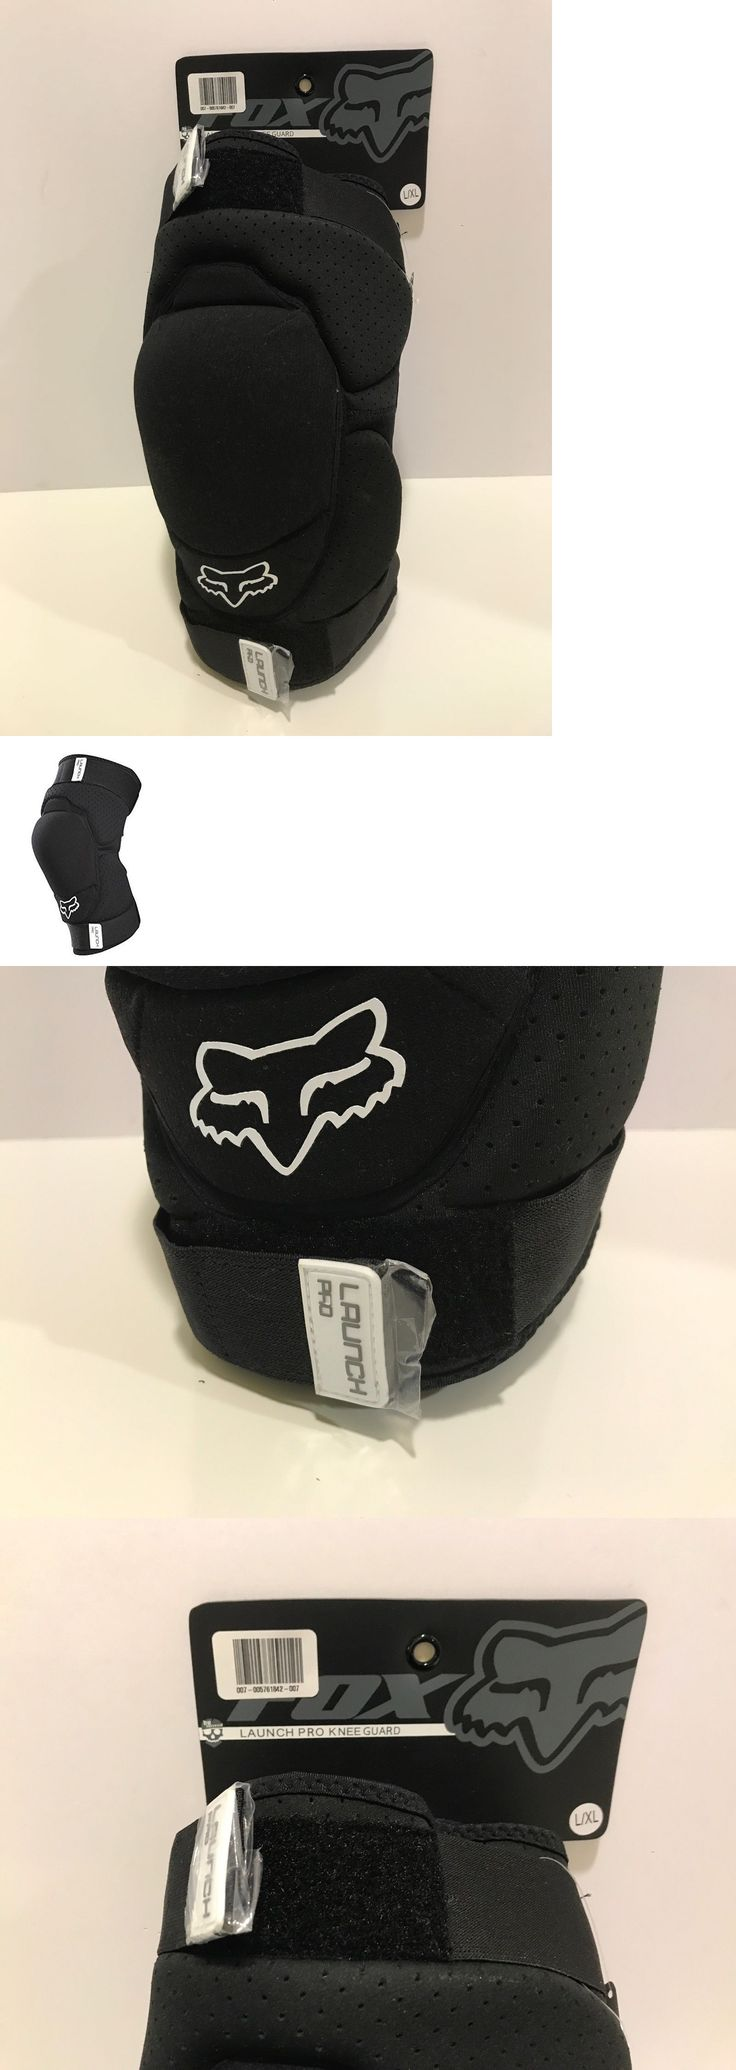 Protective Pads and Armor 42326: Fox Racing Launch Pro Mtb Knee Guard L Xl Black -> BUY IT NOW ONLY: $49.98 on eBay!